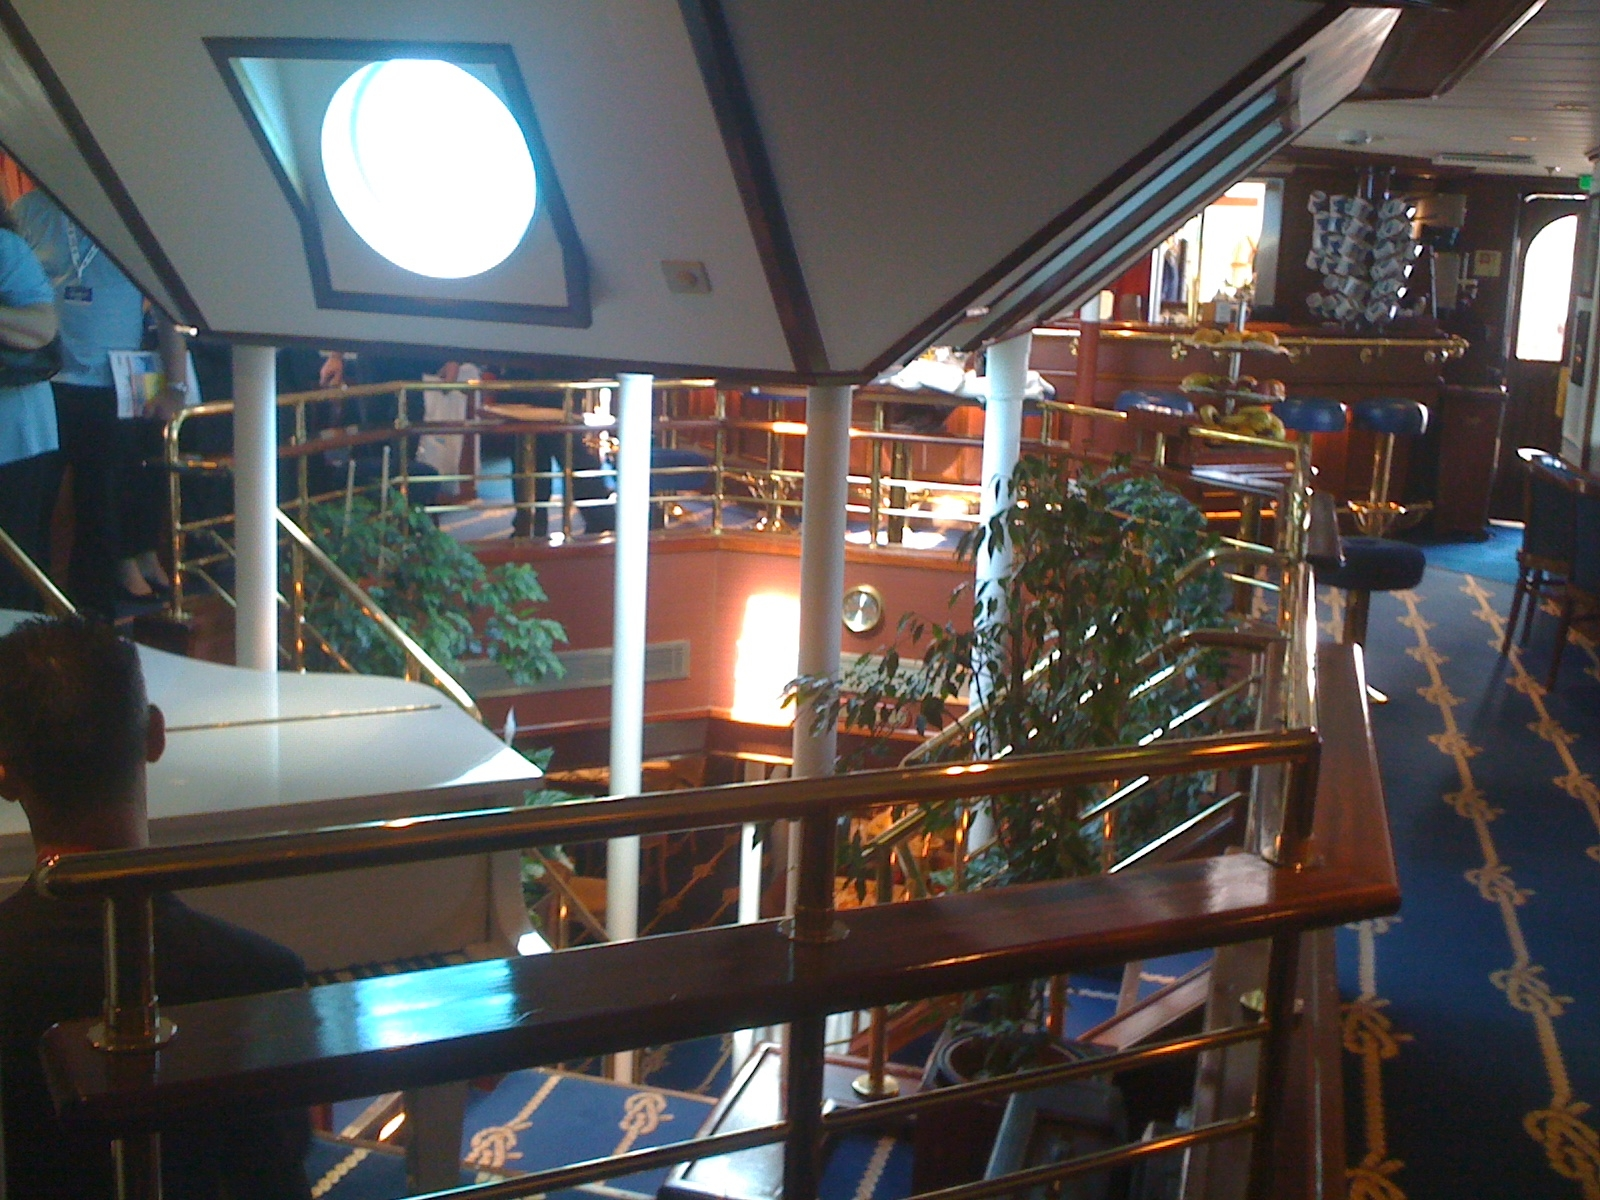 Star Clippers Cruisers Star Clippers Holidays Iglu Cruise - Star clipper cruises